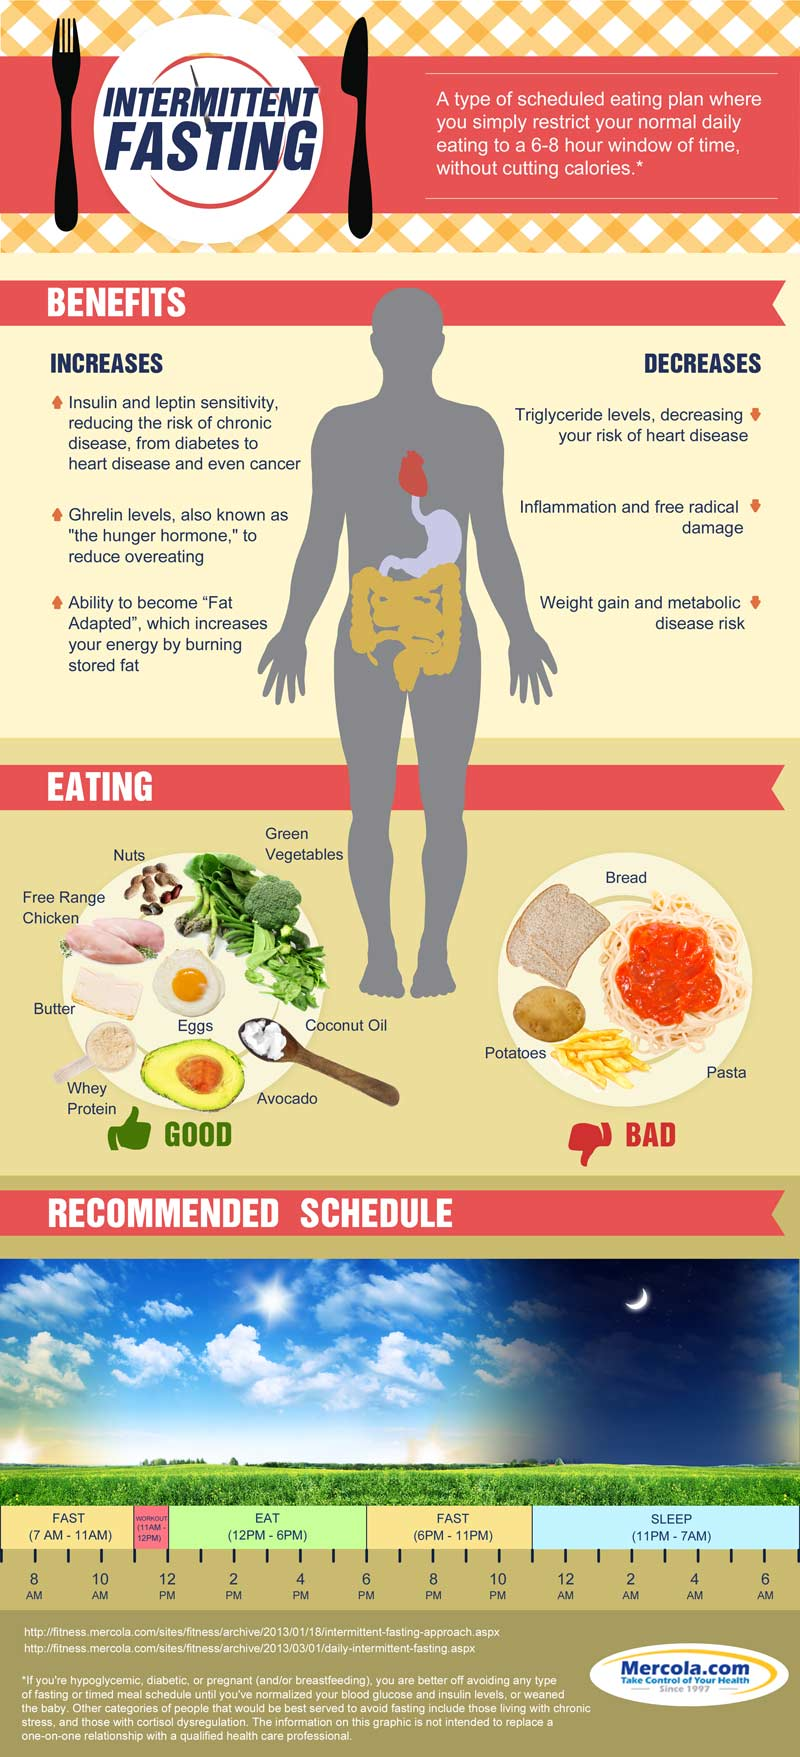 WEDNESDAY WEIGHT BLOG SERIES: Infographic about intermittent fasting